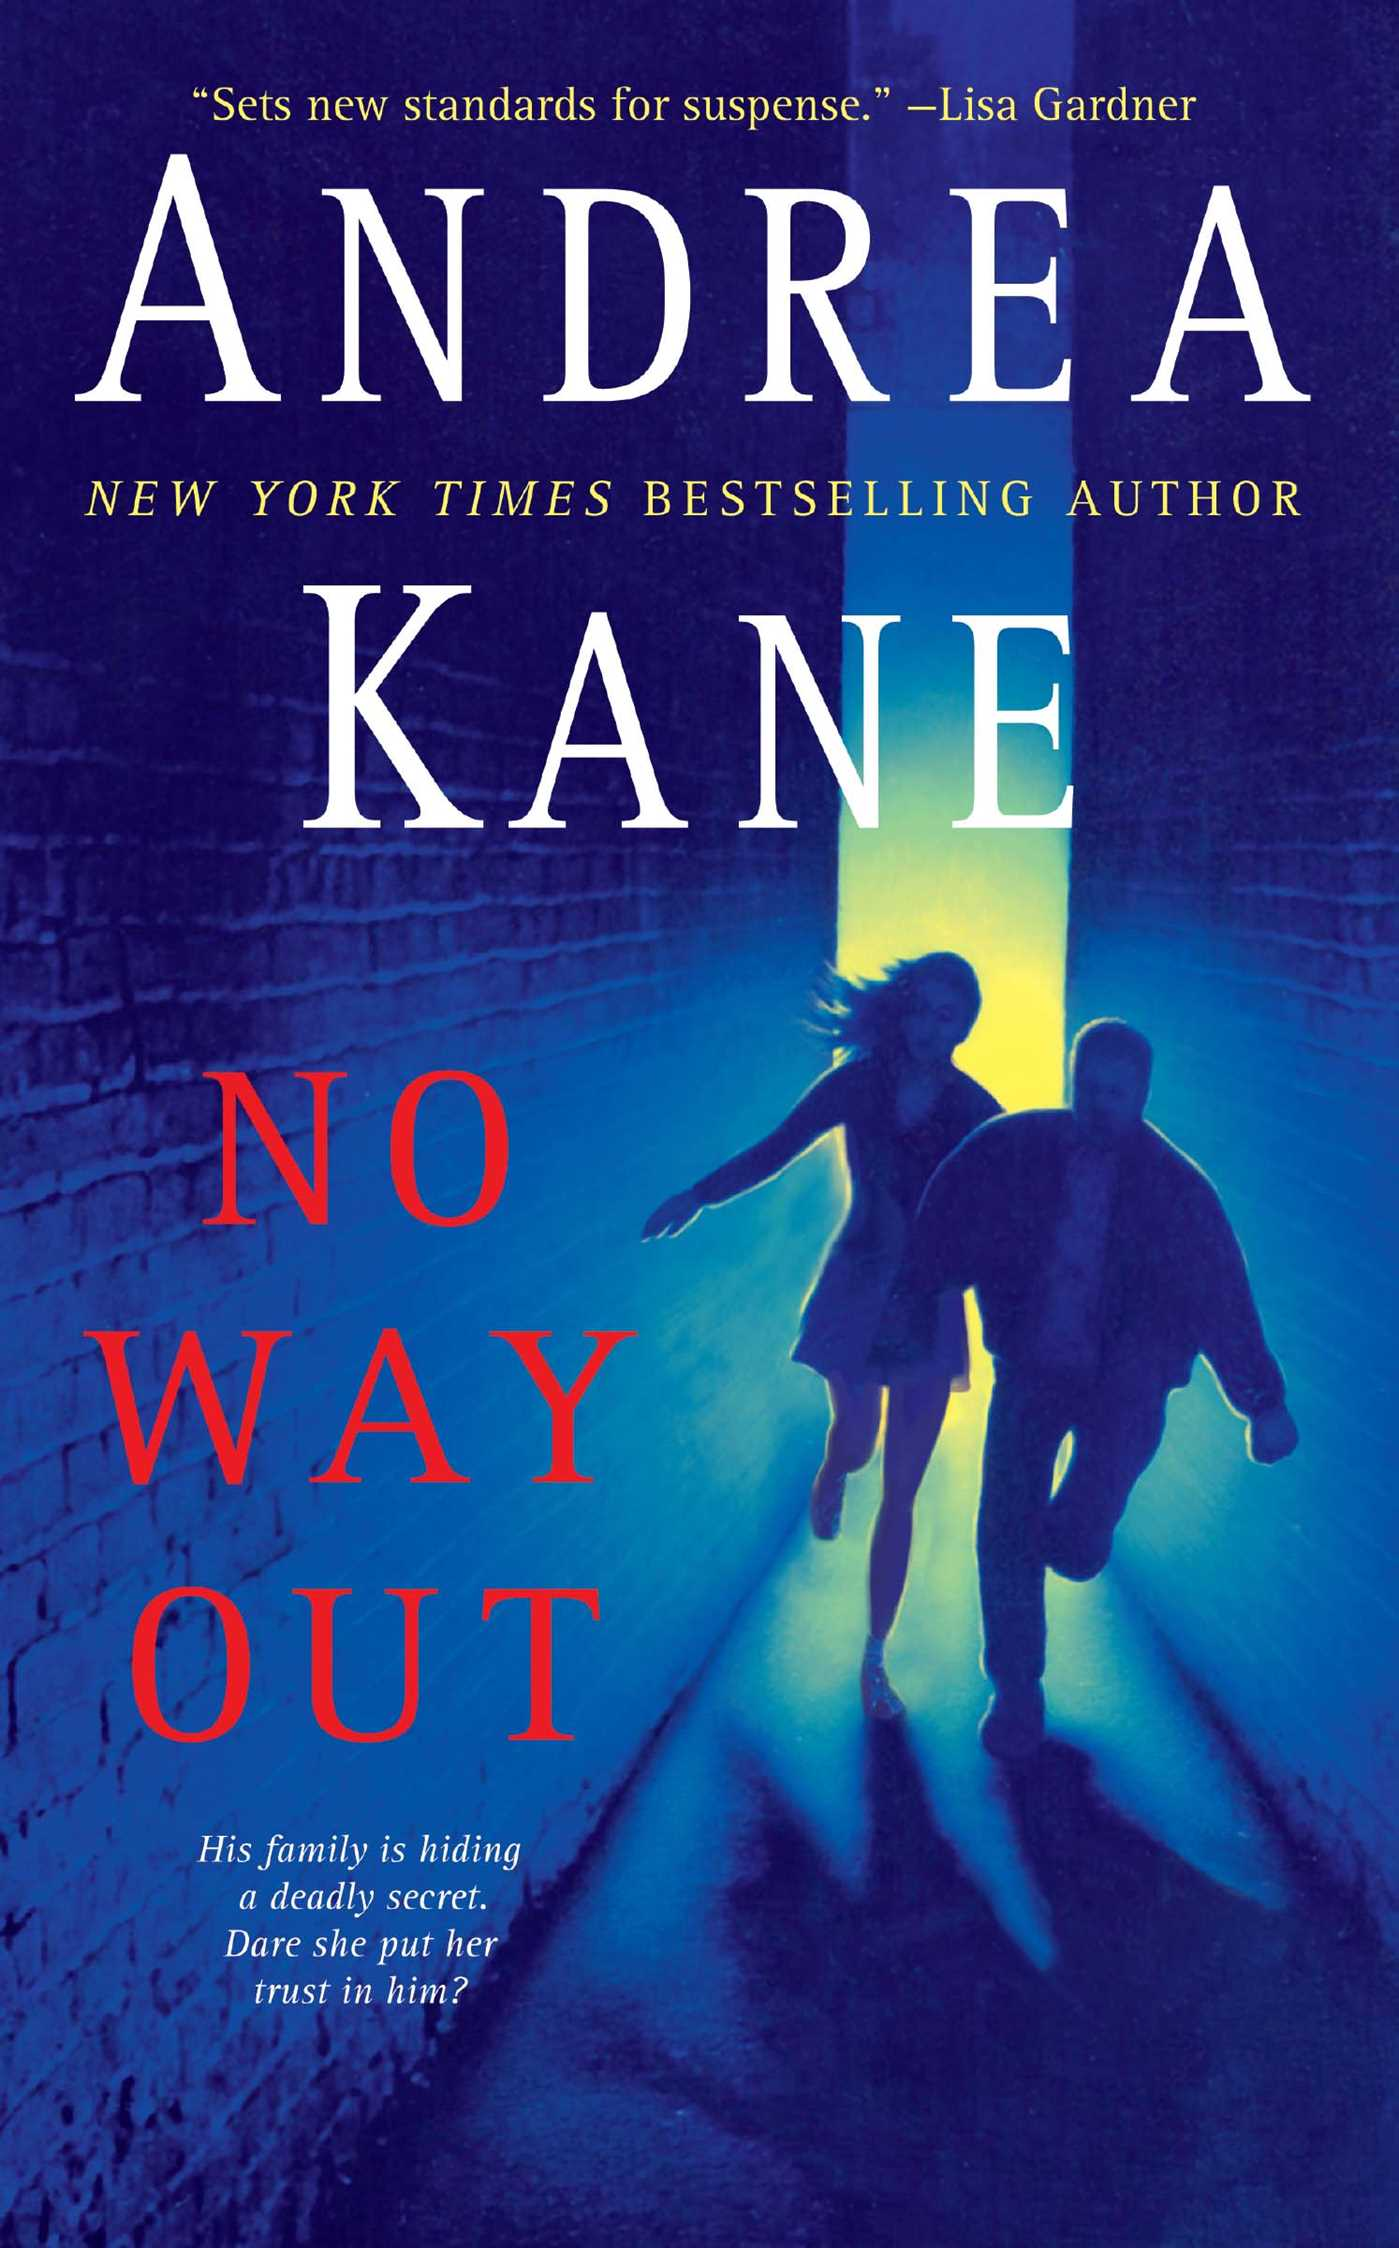 No way out 9781476730806 hr